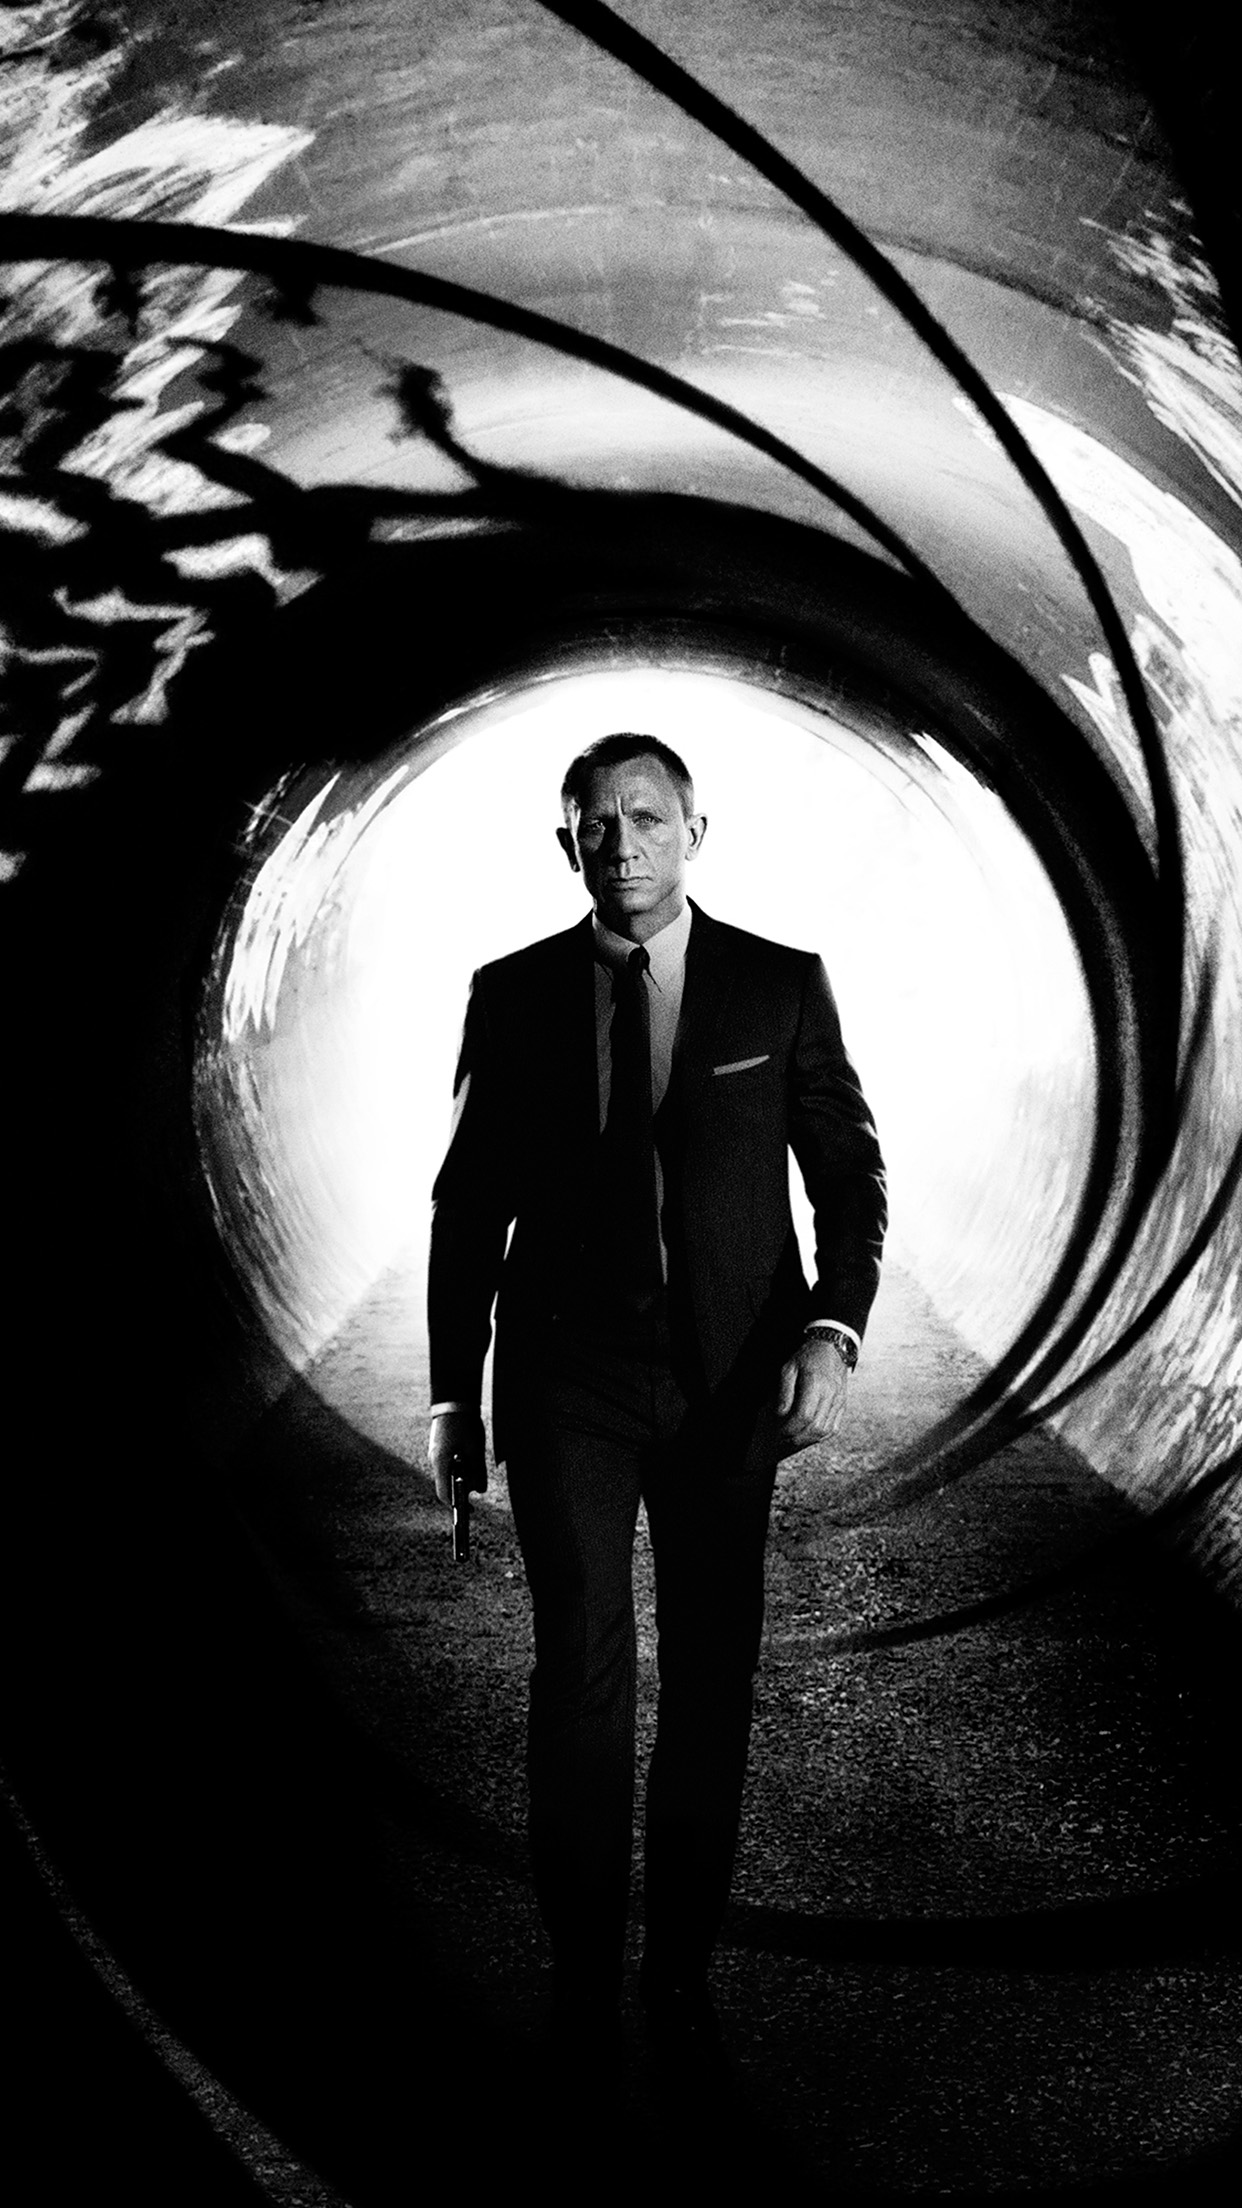 iphone7papers - hg70-james-bond-007-skyfall-film-poster